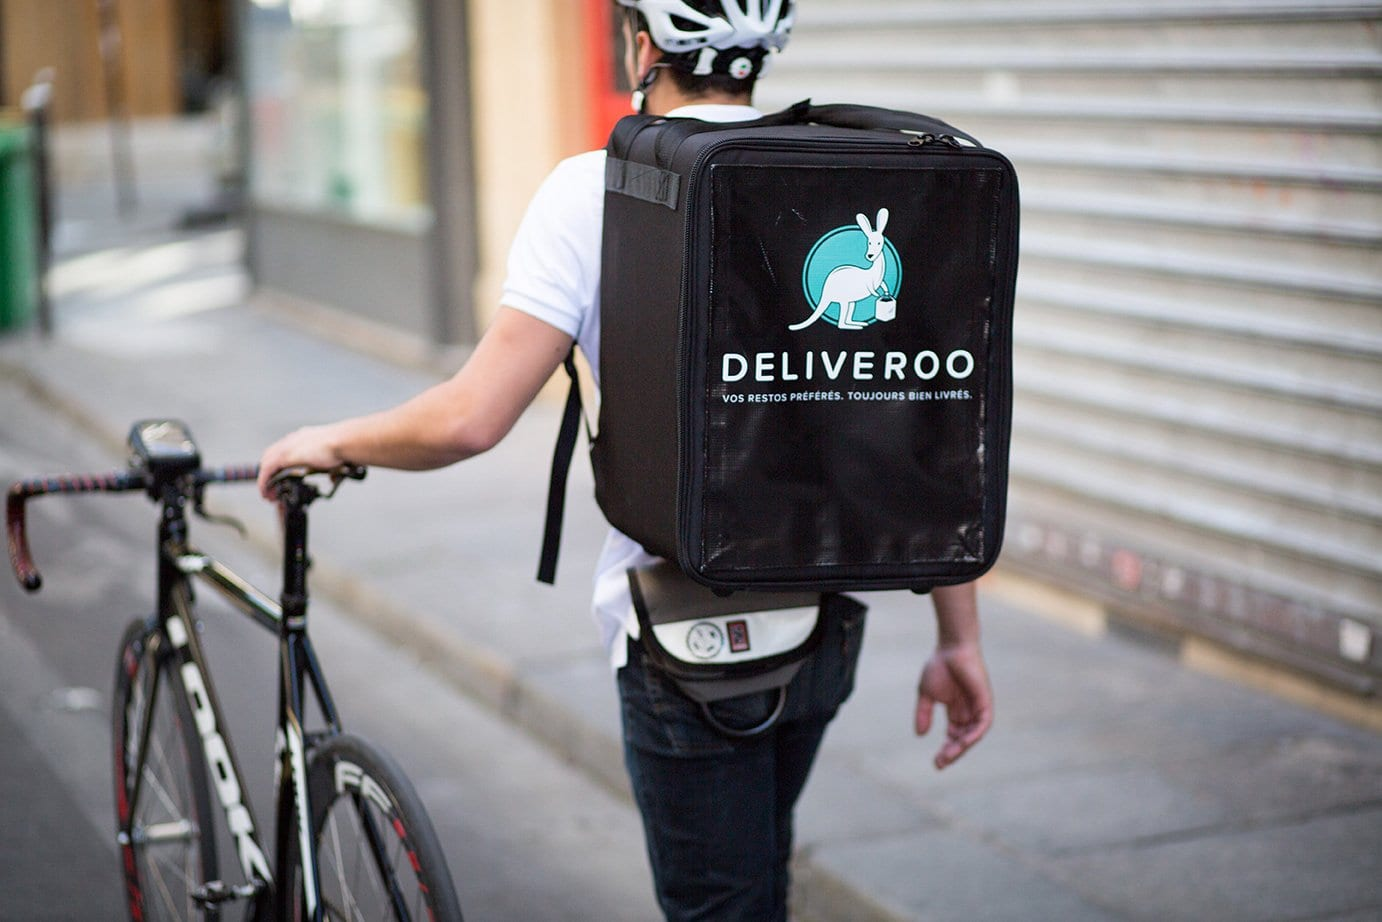 food delivery company